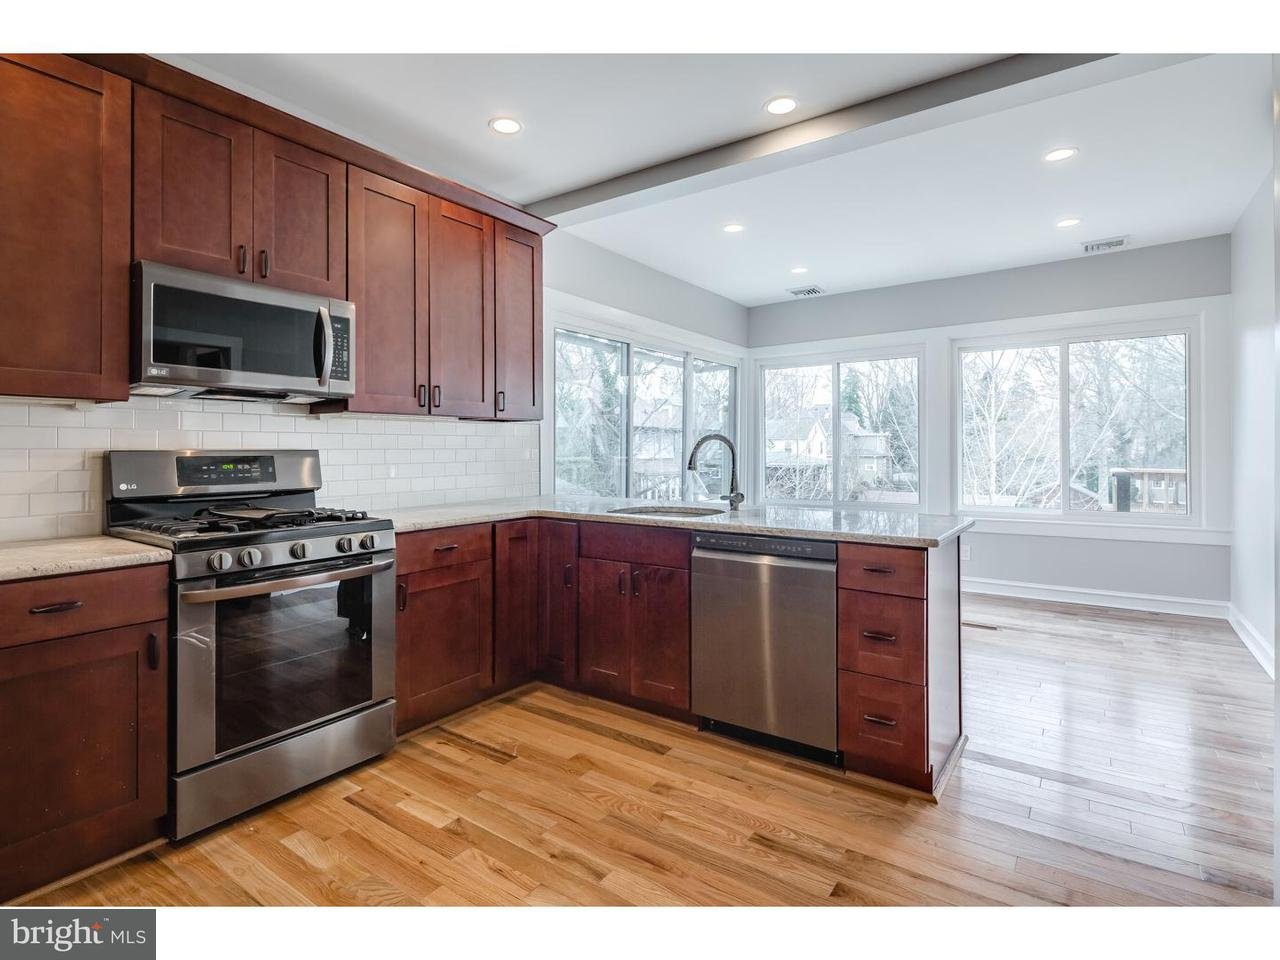 Single Family Home for Rent at 309 WARWICK Road Haddonfield, New Jersey 08033 United States